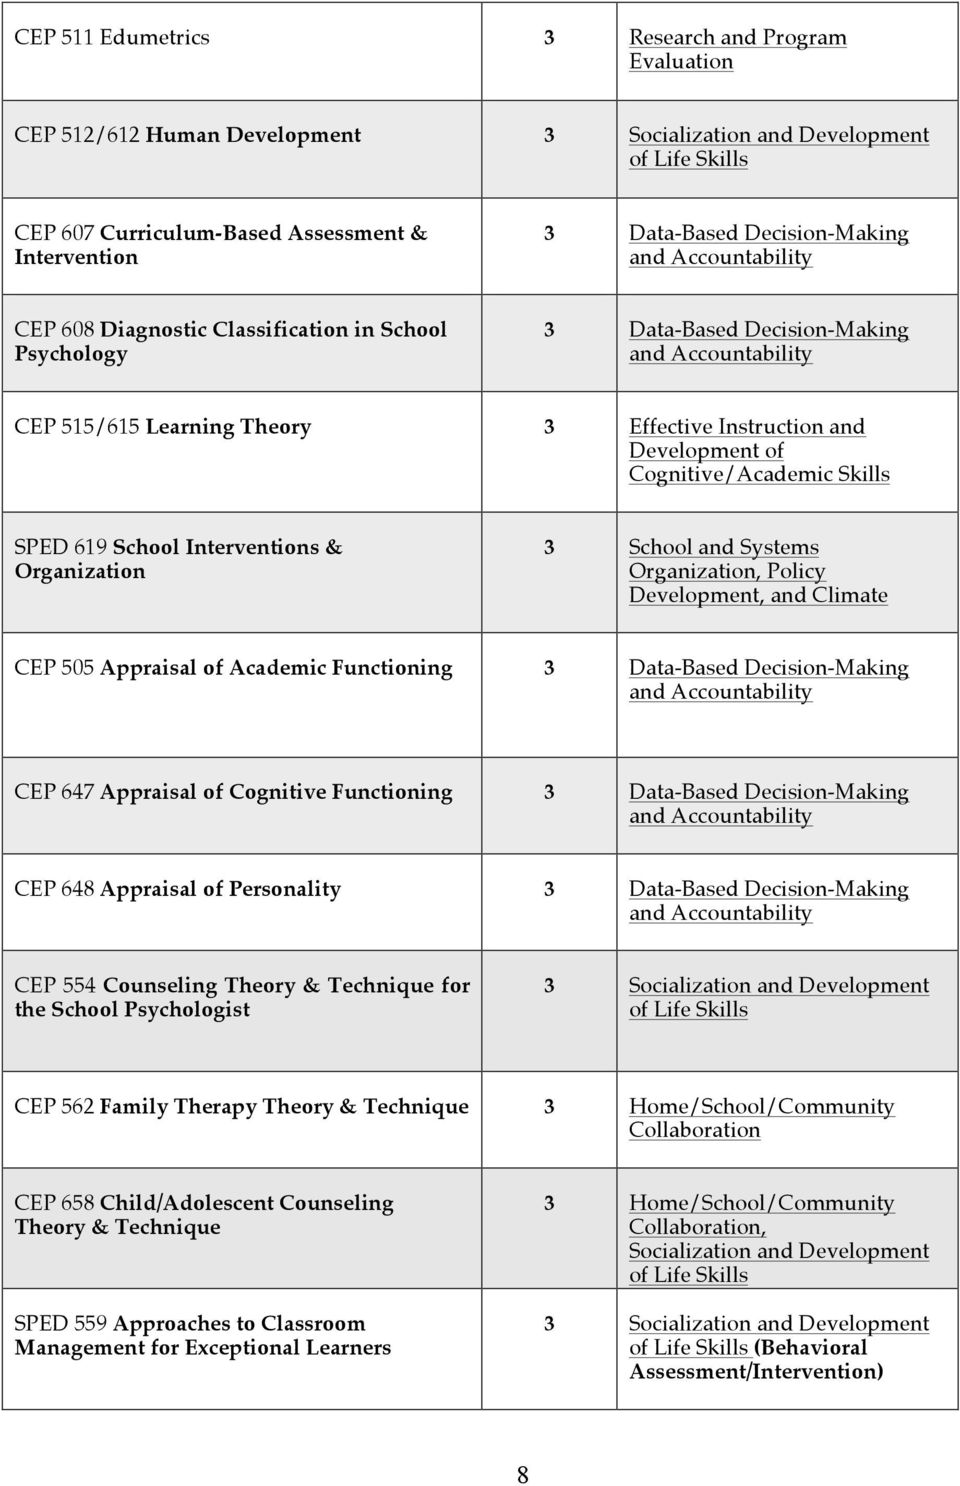 Development of Cognitive/Academic Skills SPED 619 School Interventions & Organization 3 School and Systems Organization, Policy Development, and Climate CEP 505 Appraisal of Academic Functioning 3